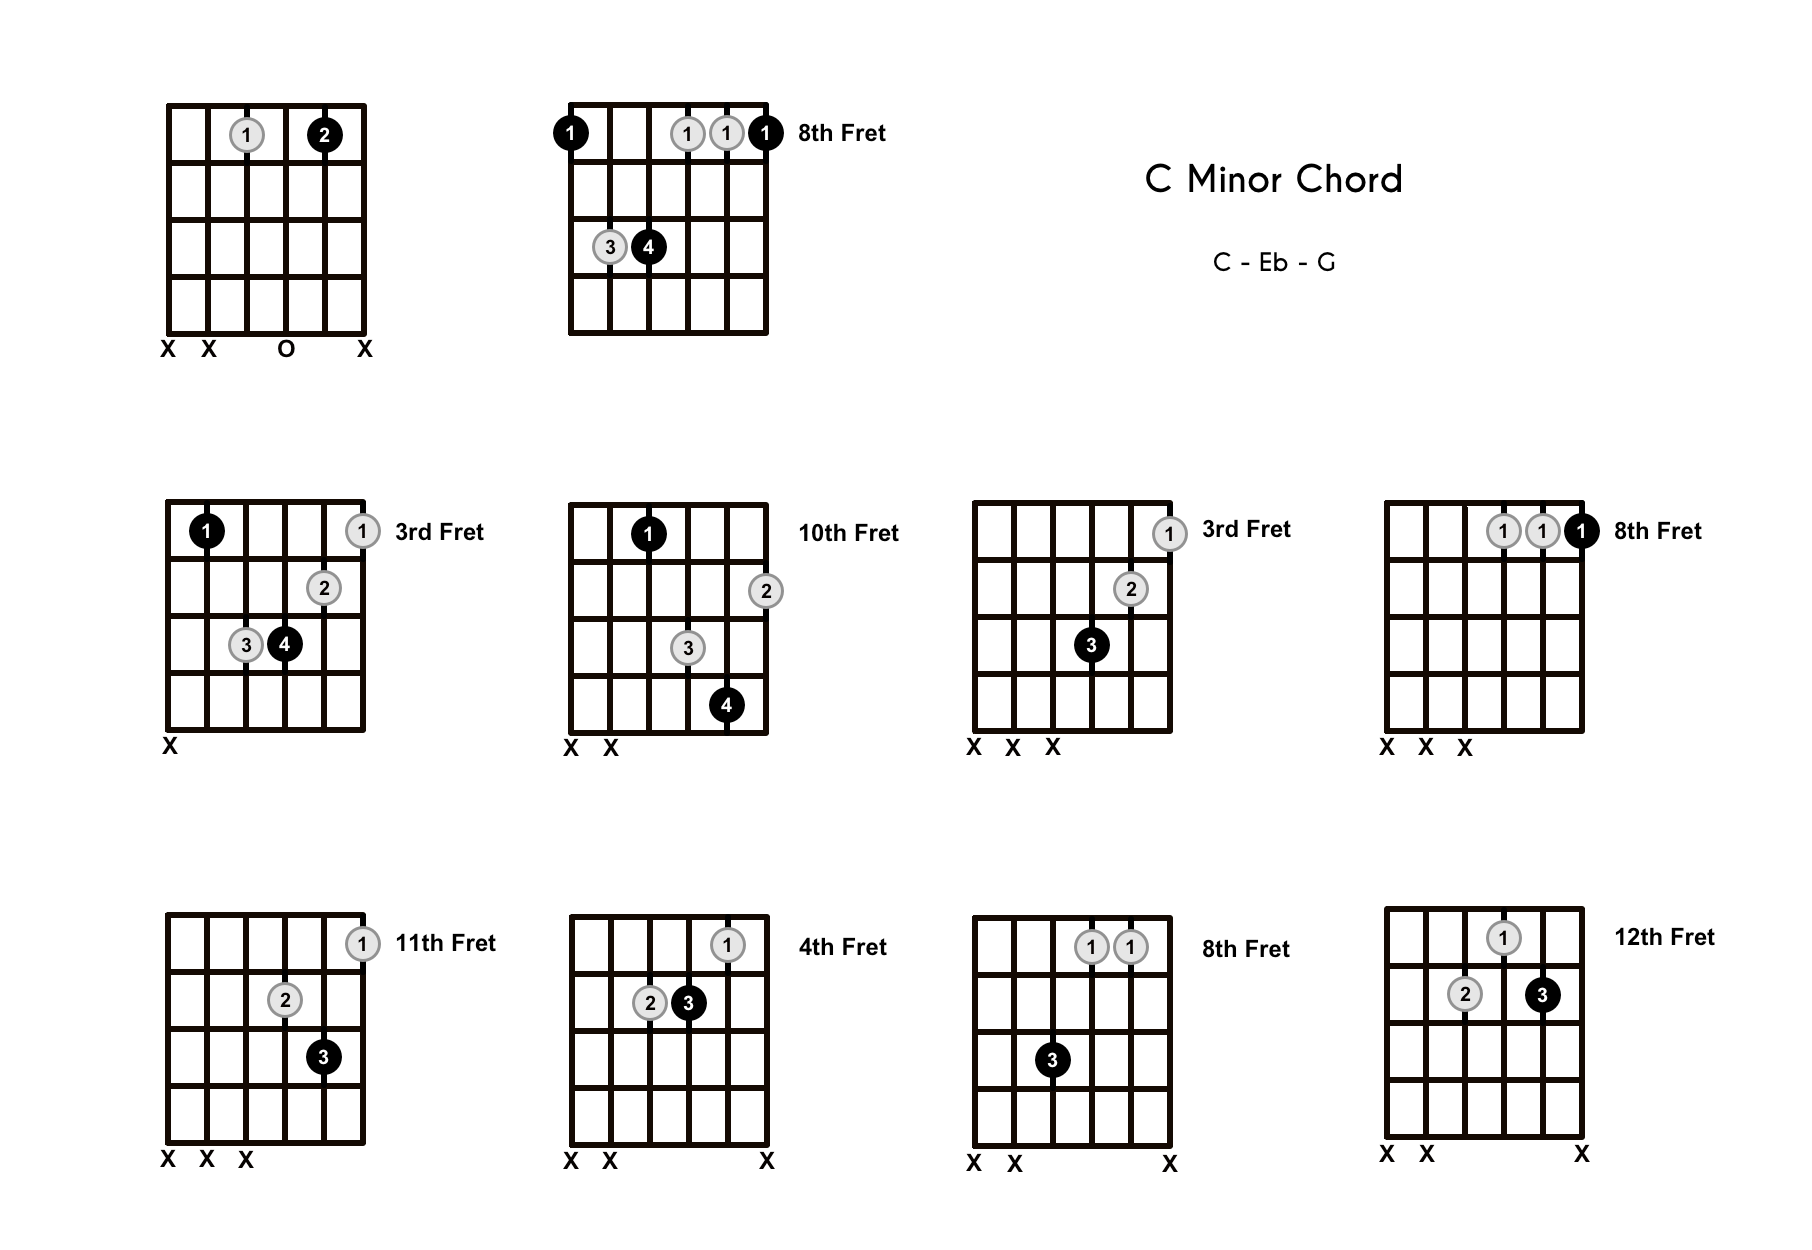 Cm Chord on the Guitar (C Minor) – Diagrams, Finger Positions, Theory